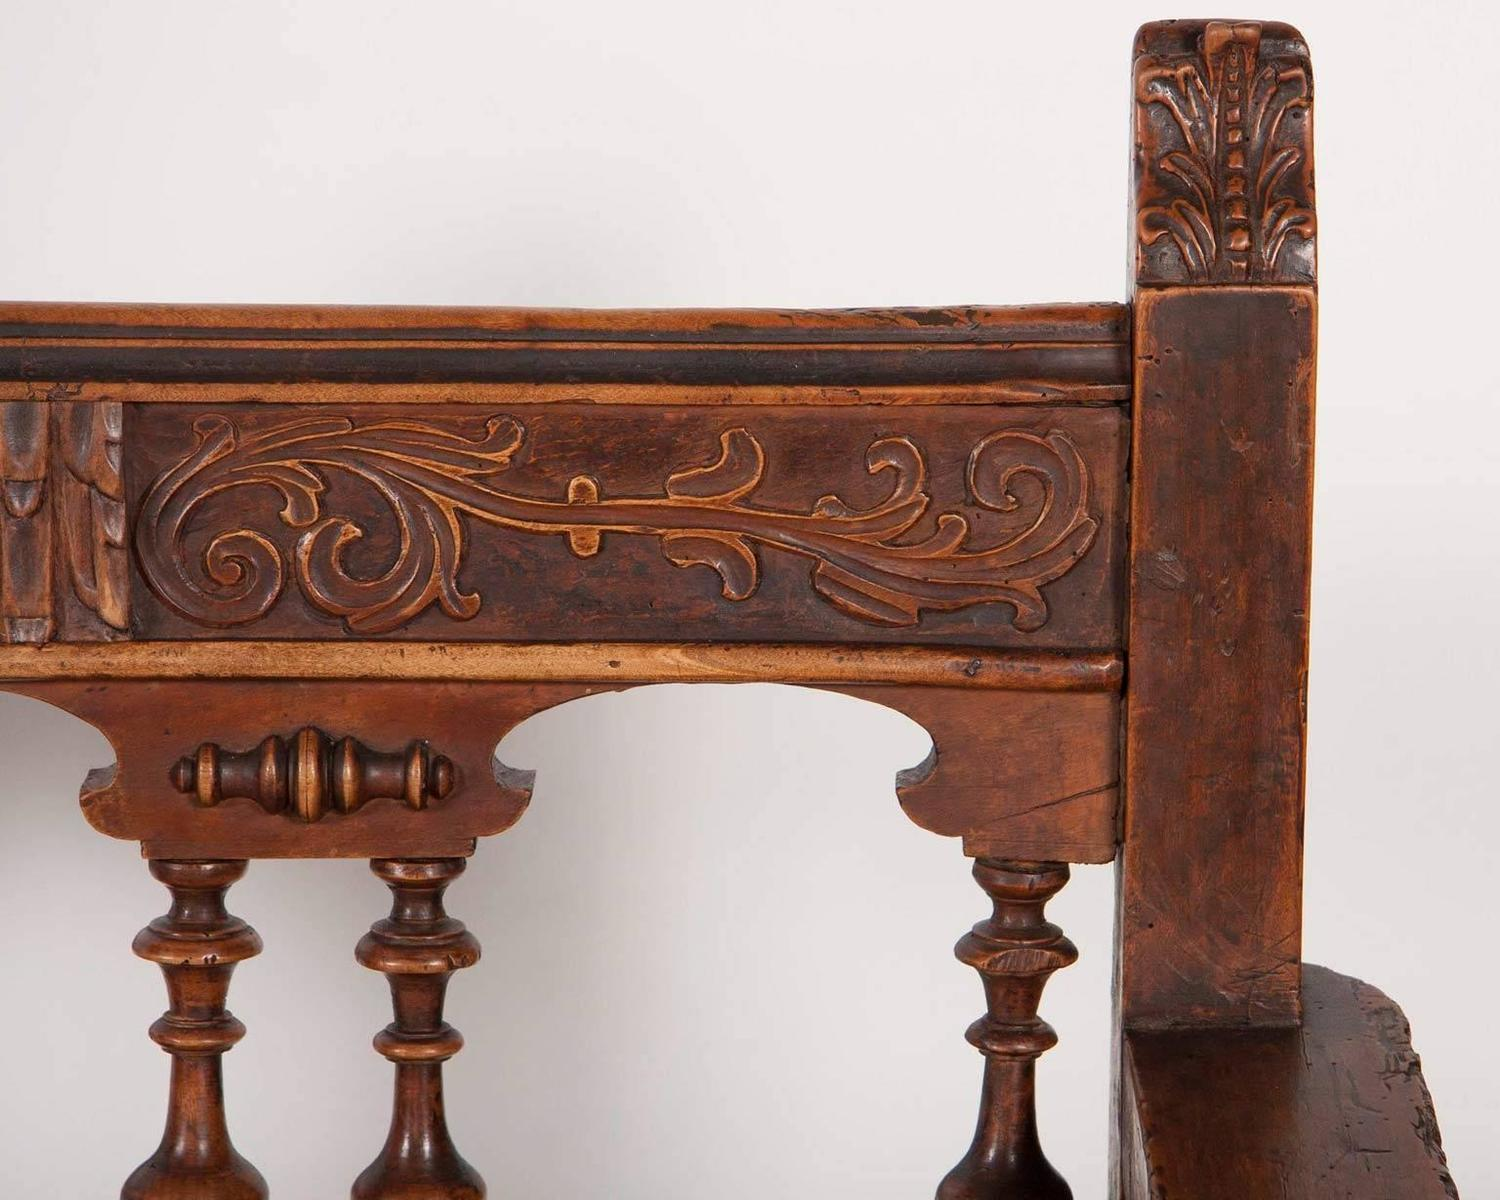 Spanish baroque carved walnut bench at 1stdibs for Spanish baroque furniture